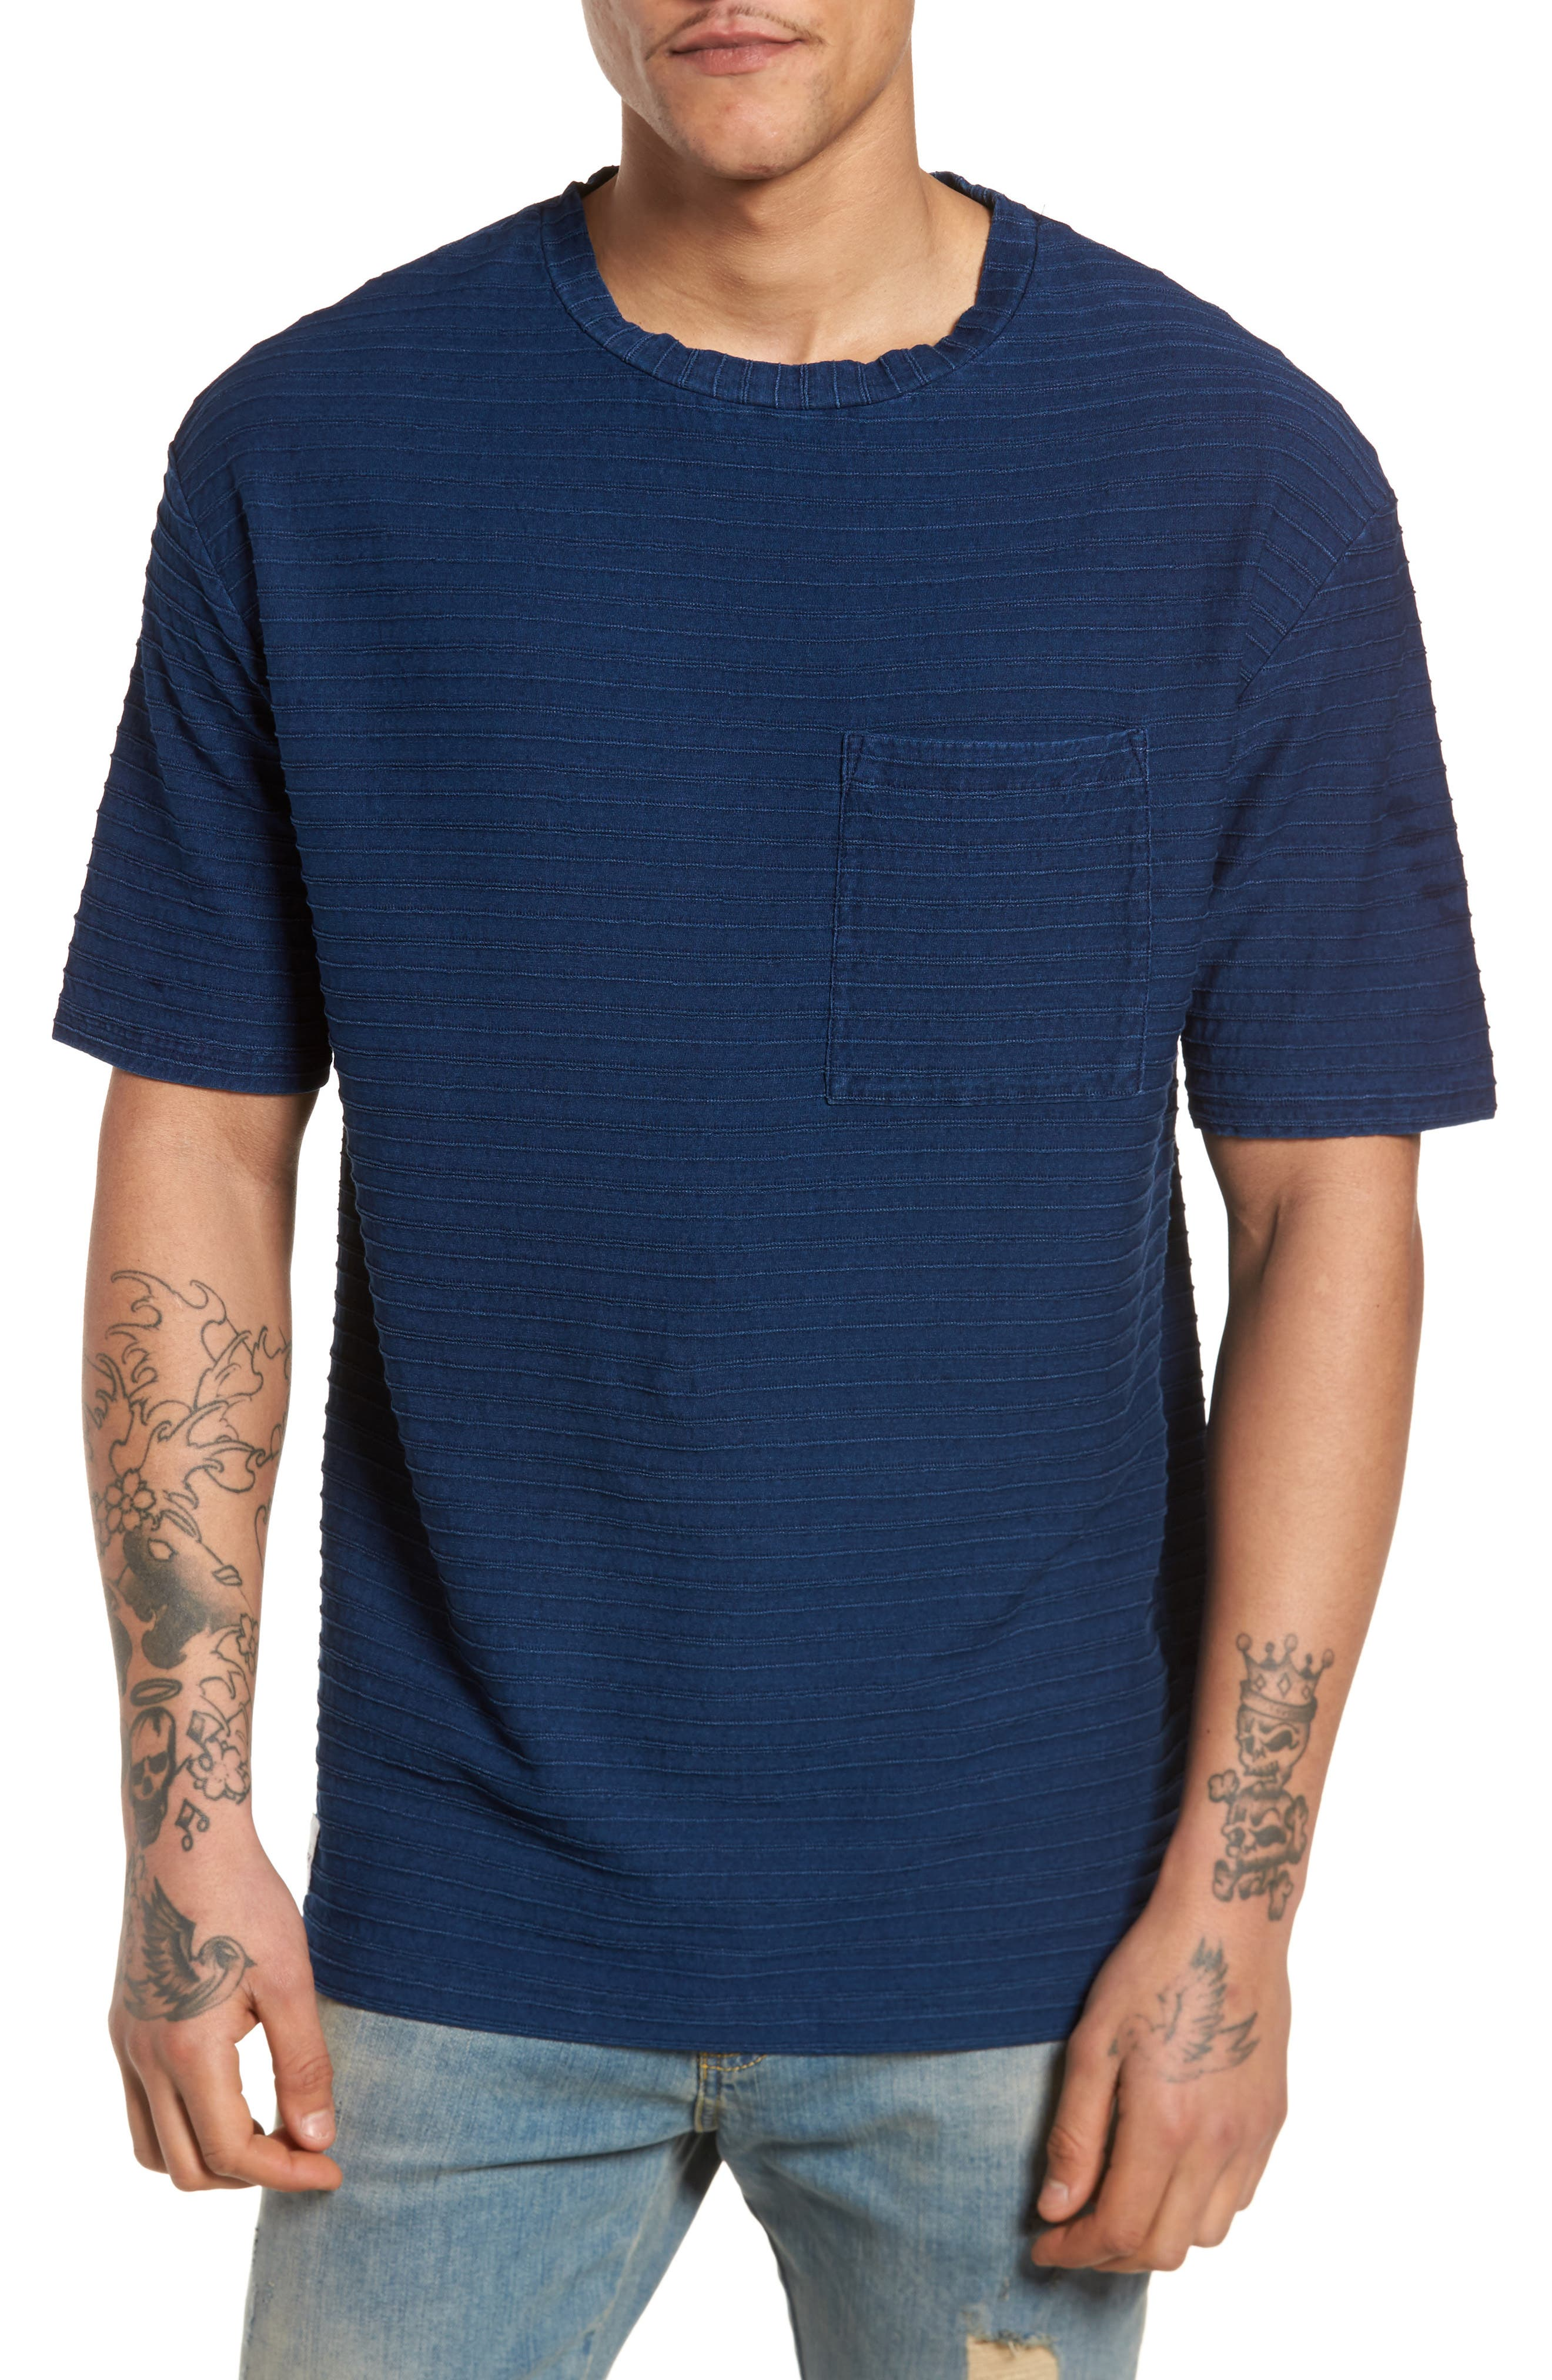 Tidal T-Shirt,                         Main,                         color, Indigo